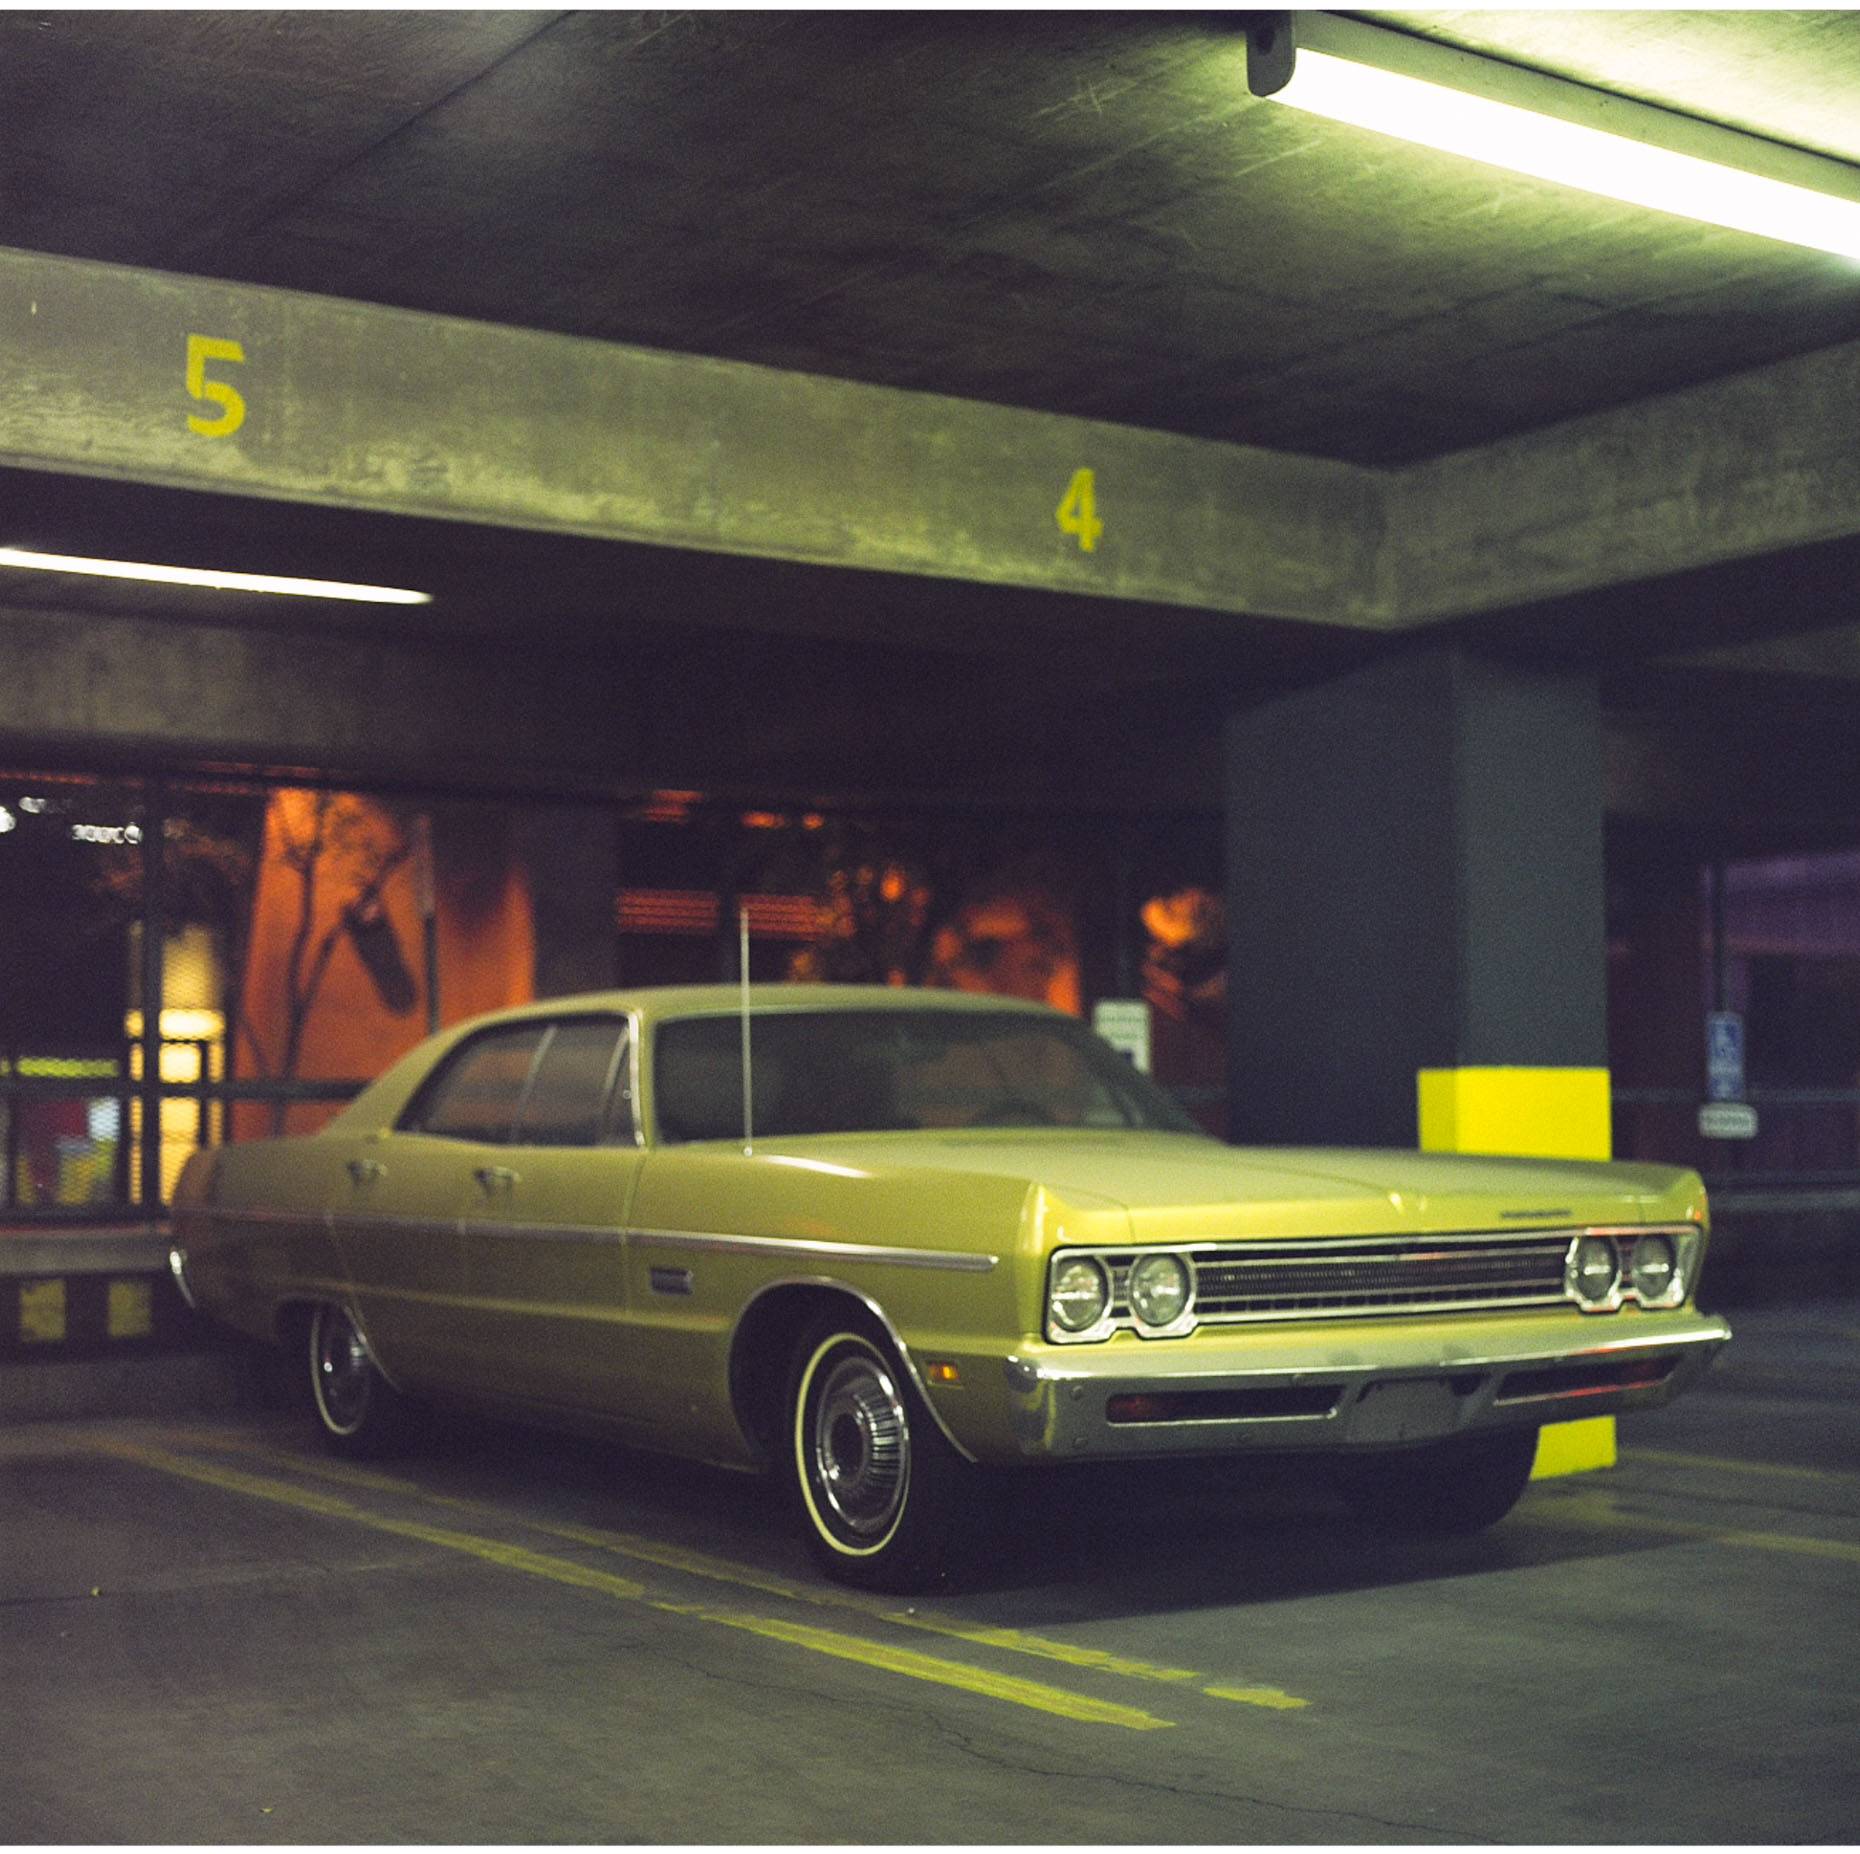 An un-licensed Plymouth Fury sits in a parking lot in  Albuquerque, New Mexico illuminated by the strip lights above.